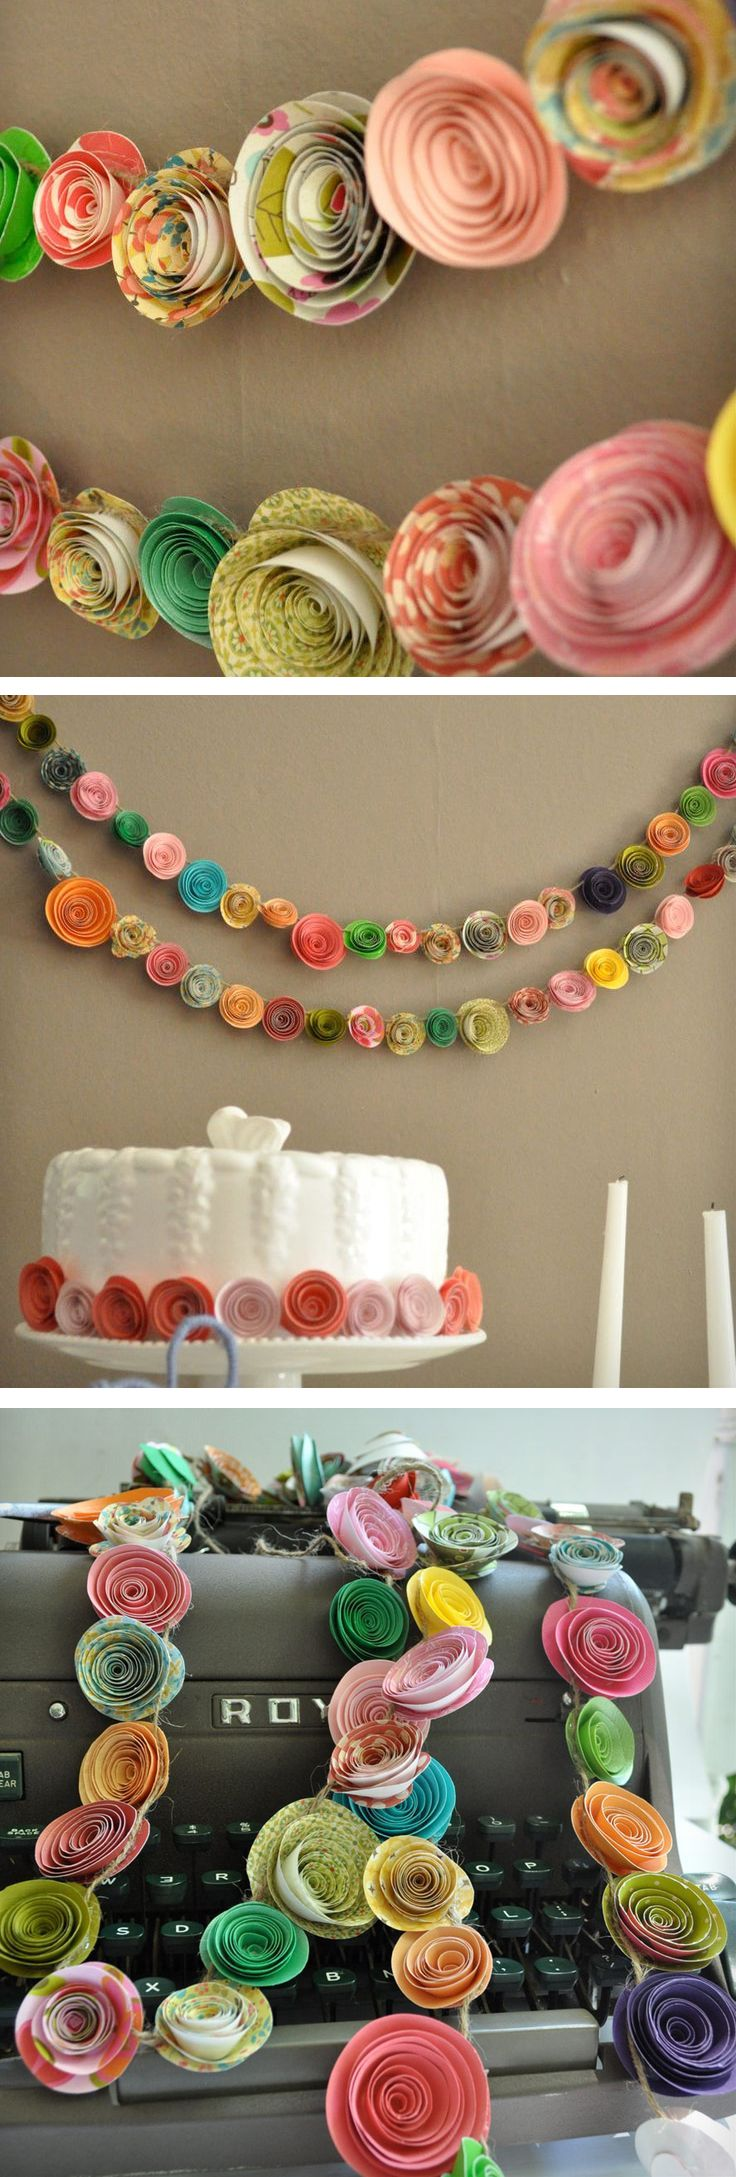 DIY paper flower garland use stampin up spiral flower die